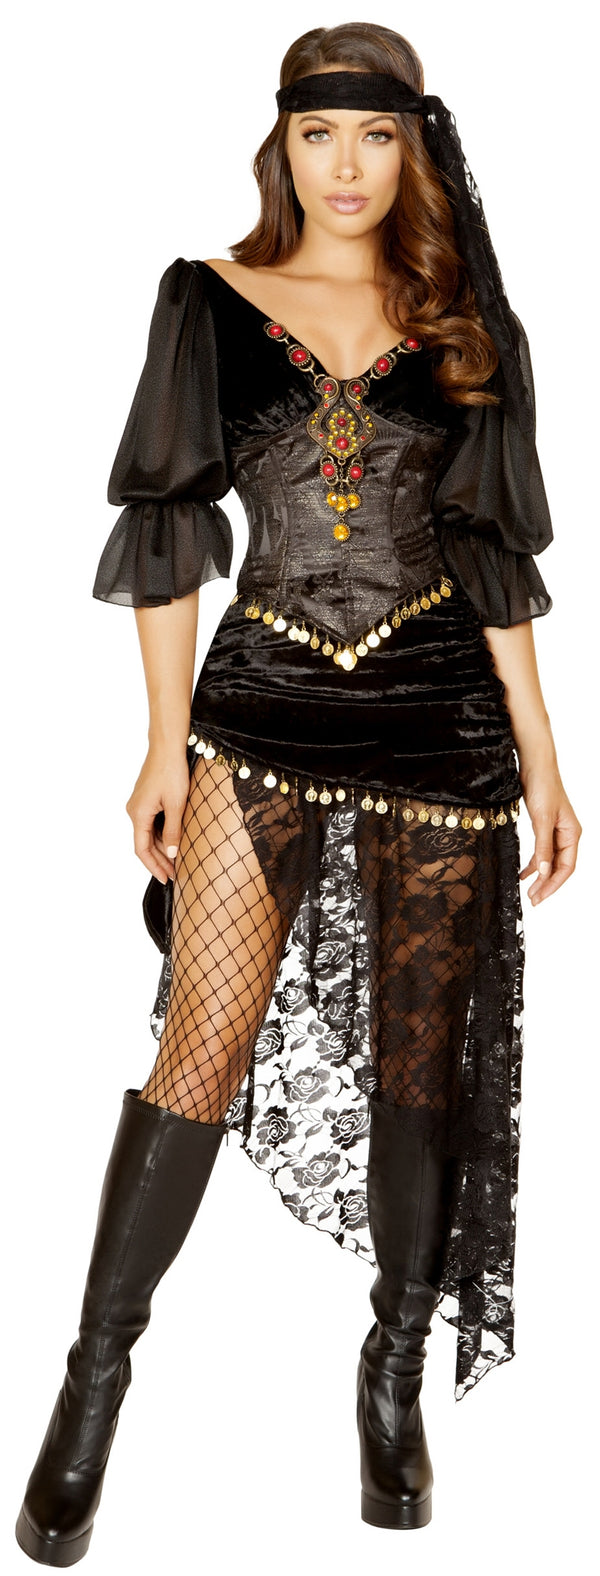 RM-4880 Gypsy Maiden costume